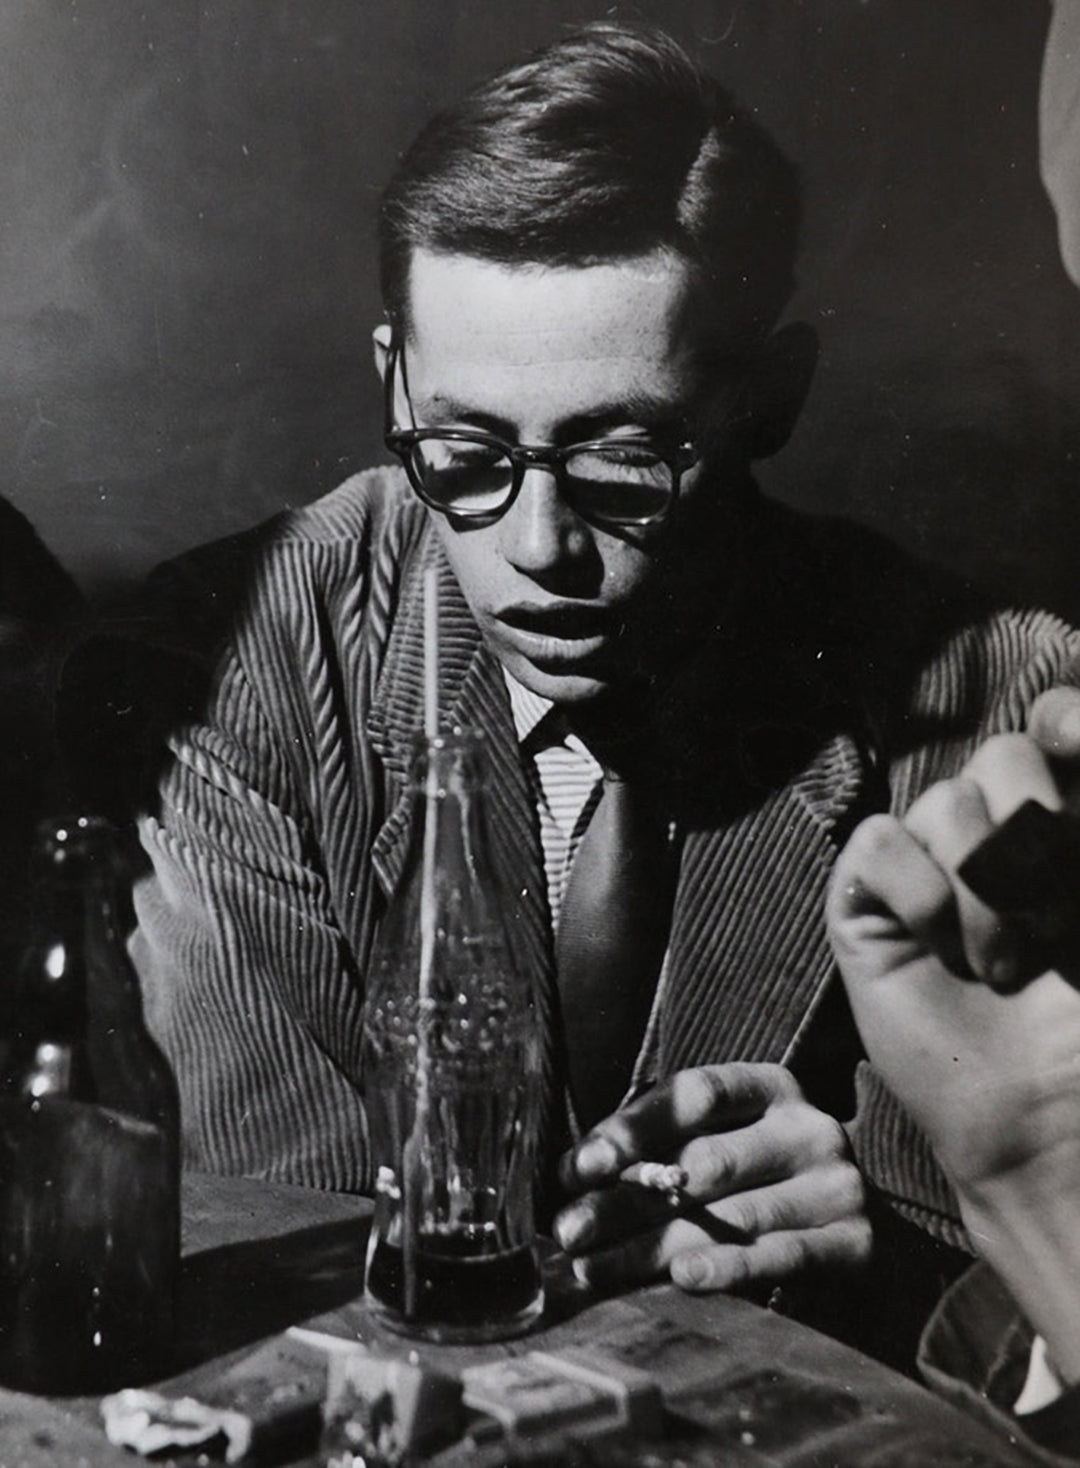 Young Dieter Rams in a Jazz club wearing thick rimmed spectacles